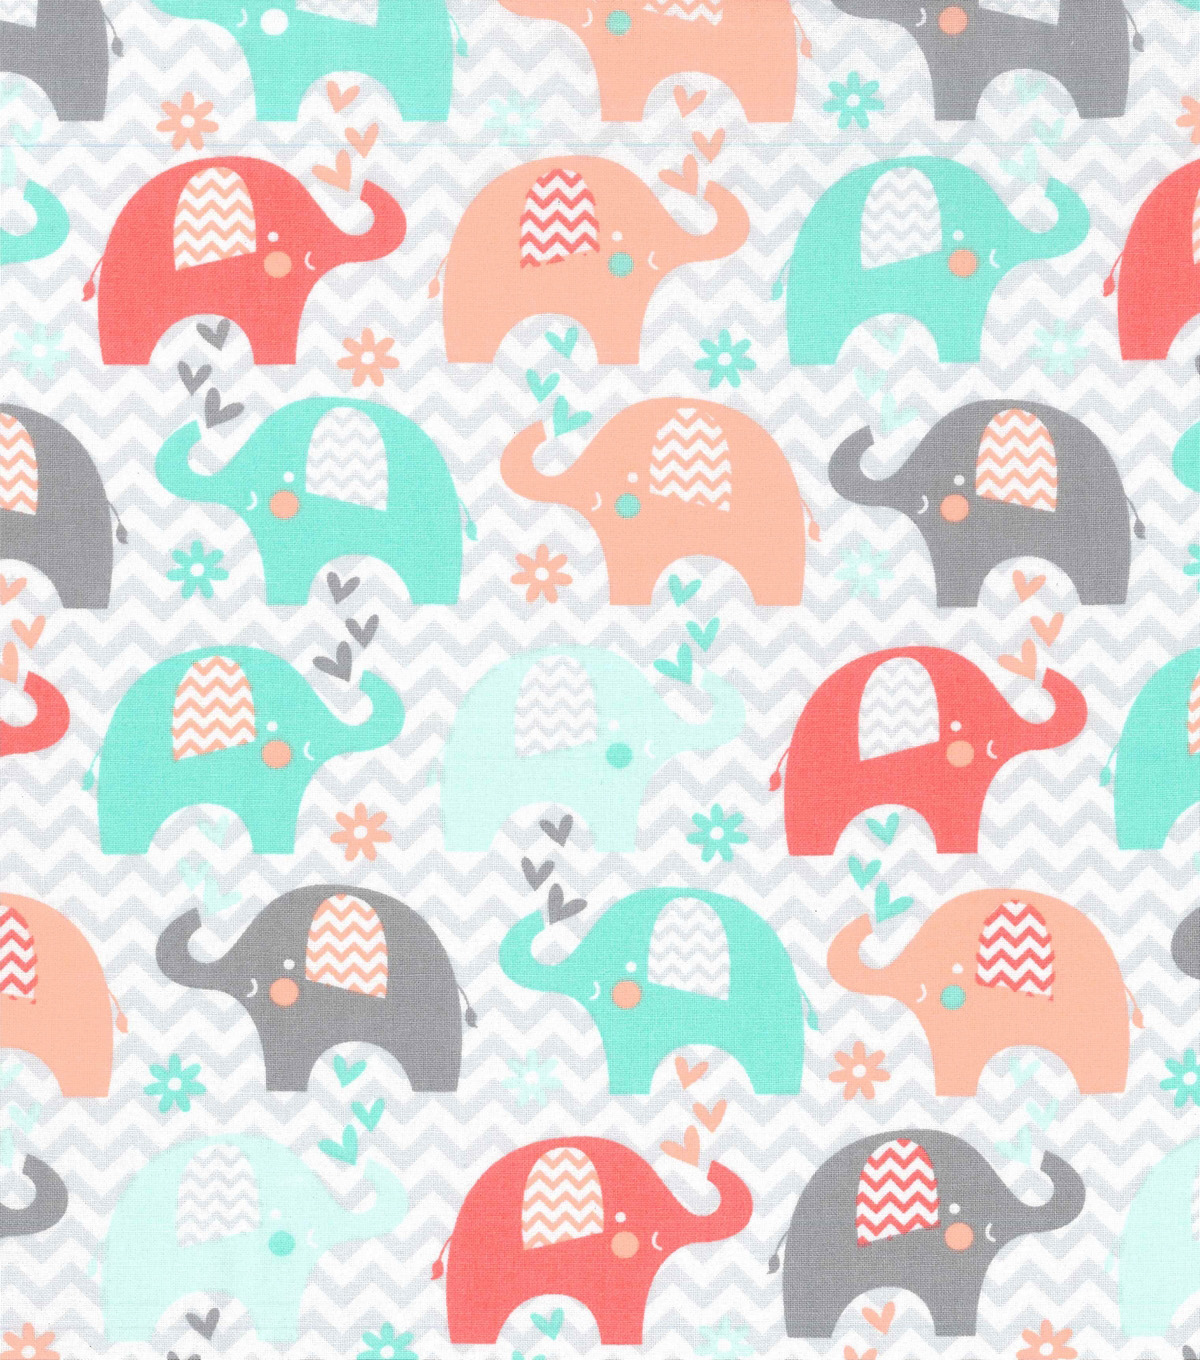 Nursery Cotton Fabric C Dream Chevron Elephant